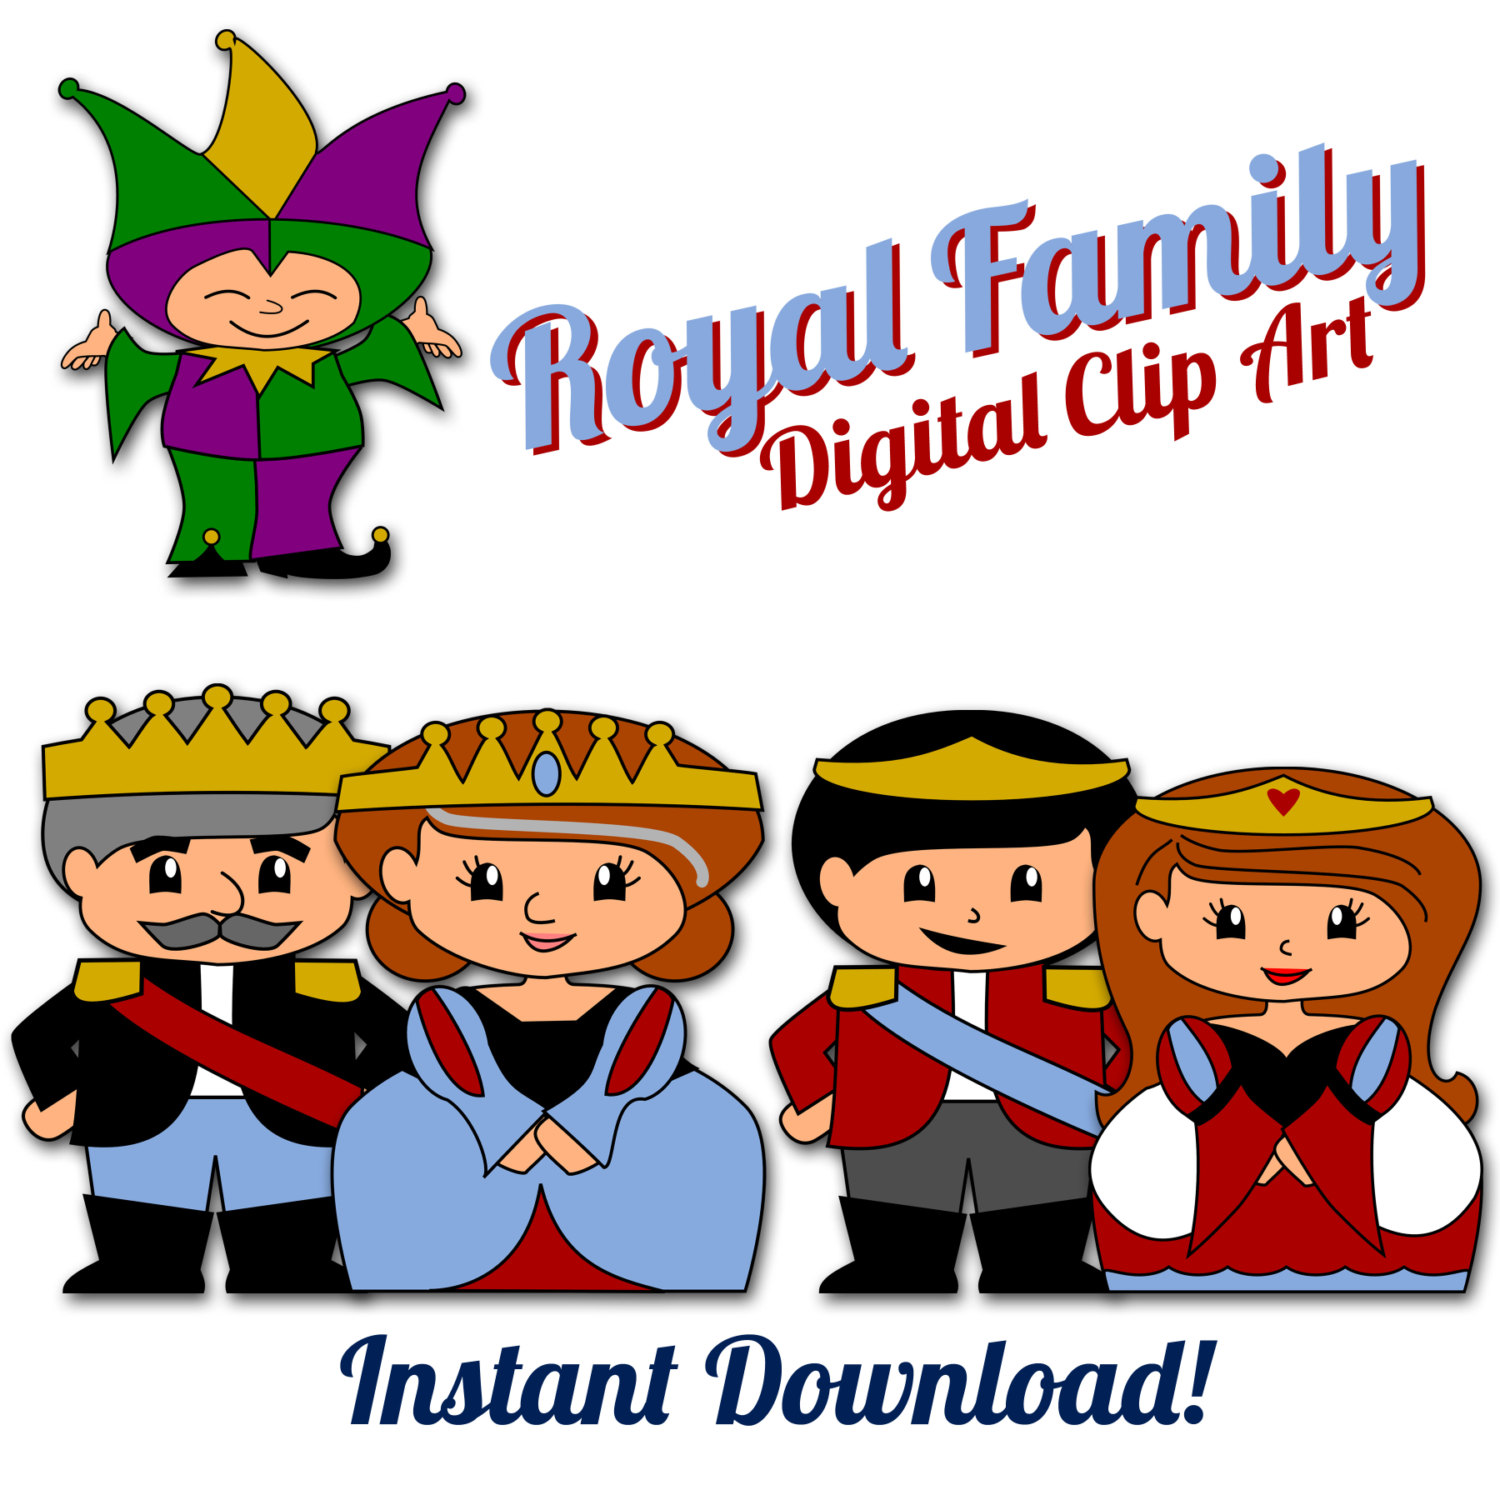 King and Queen Digital Clip Art prince princess court.